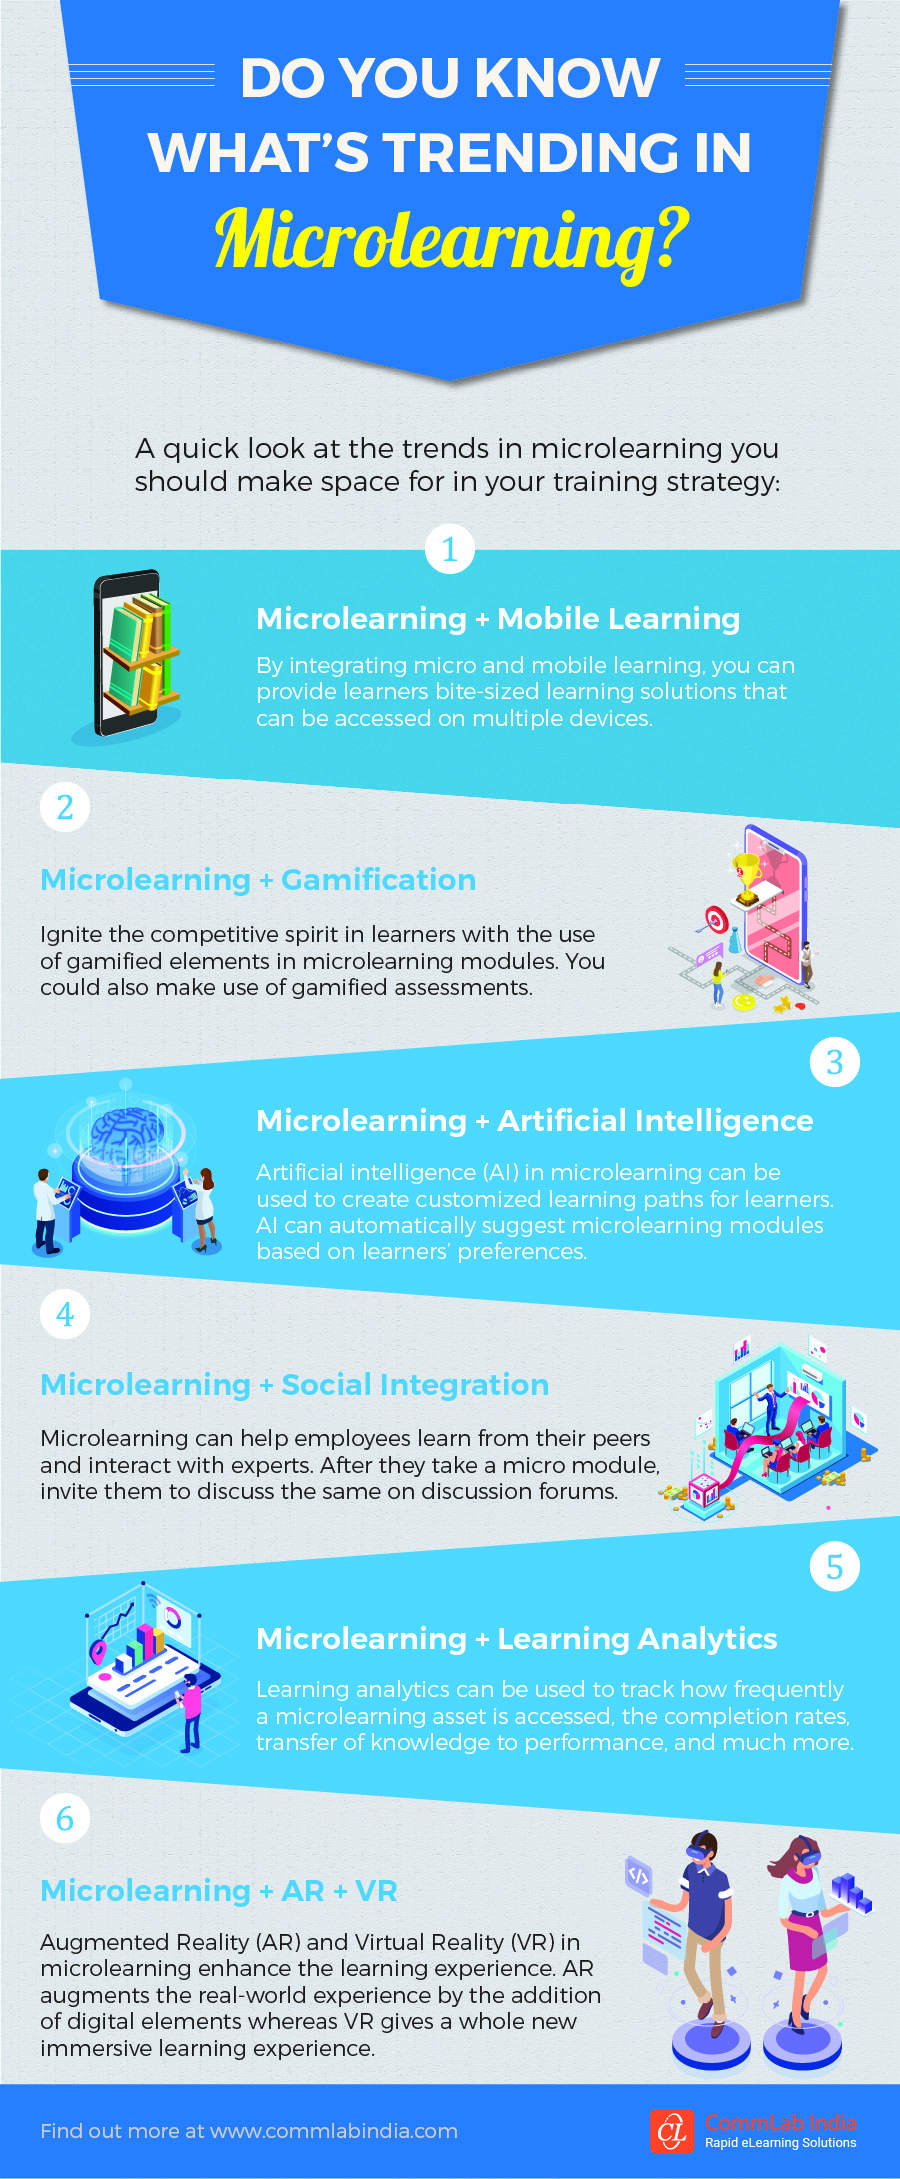 Do You Know What's Trending in Microlearning? [Infographic]